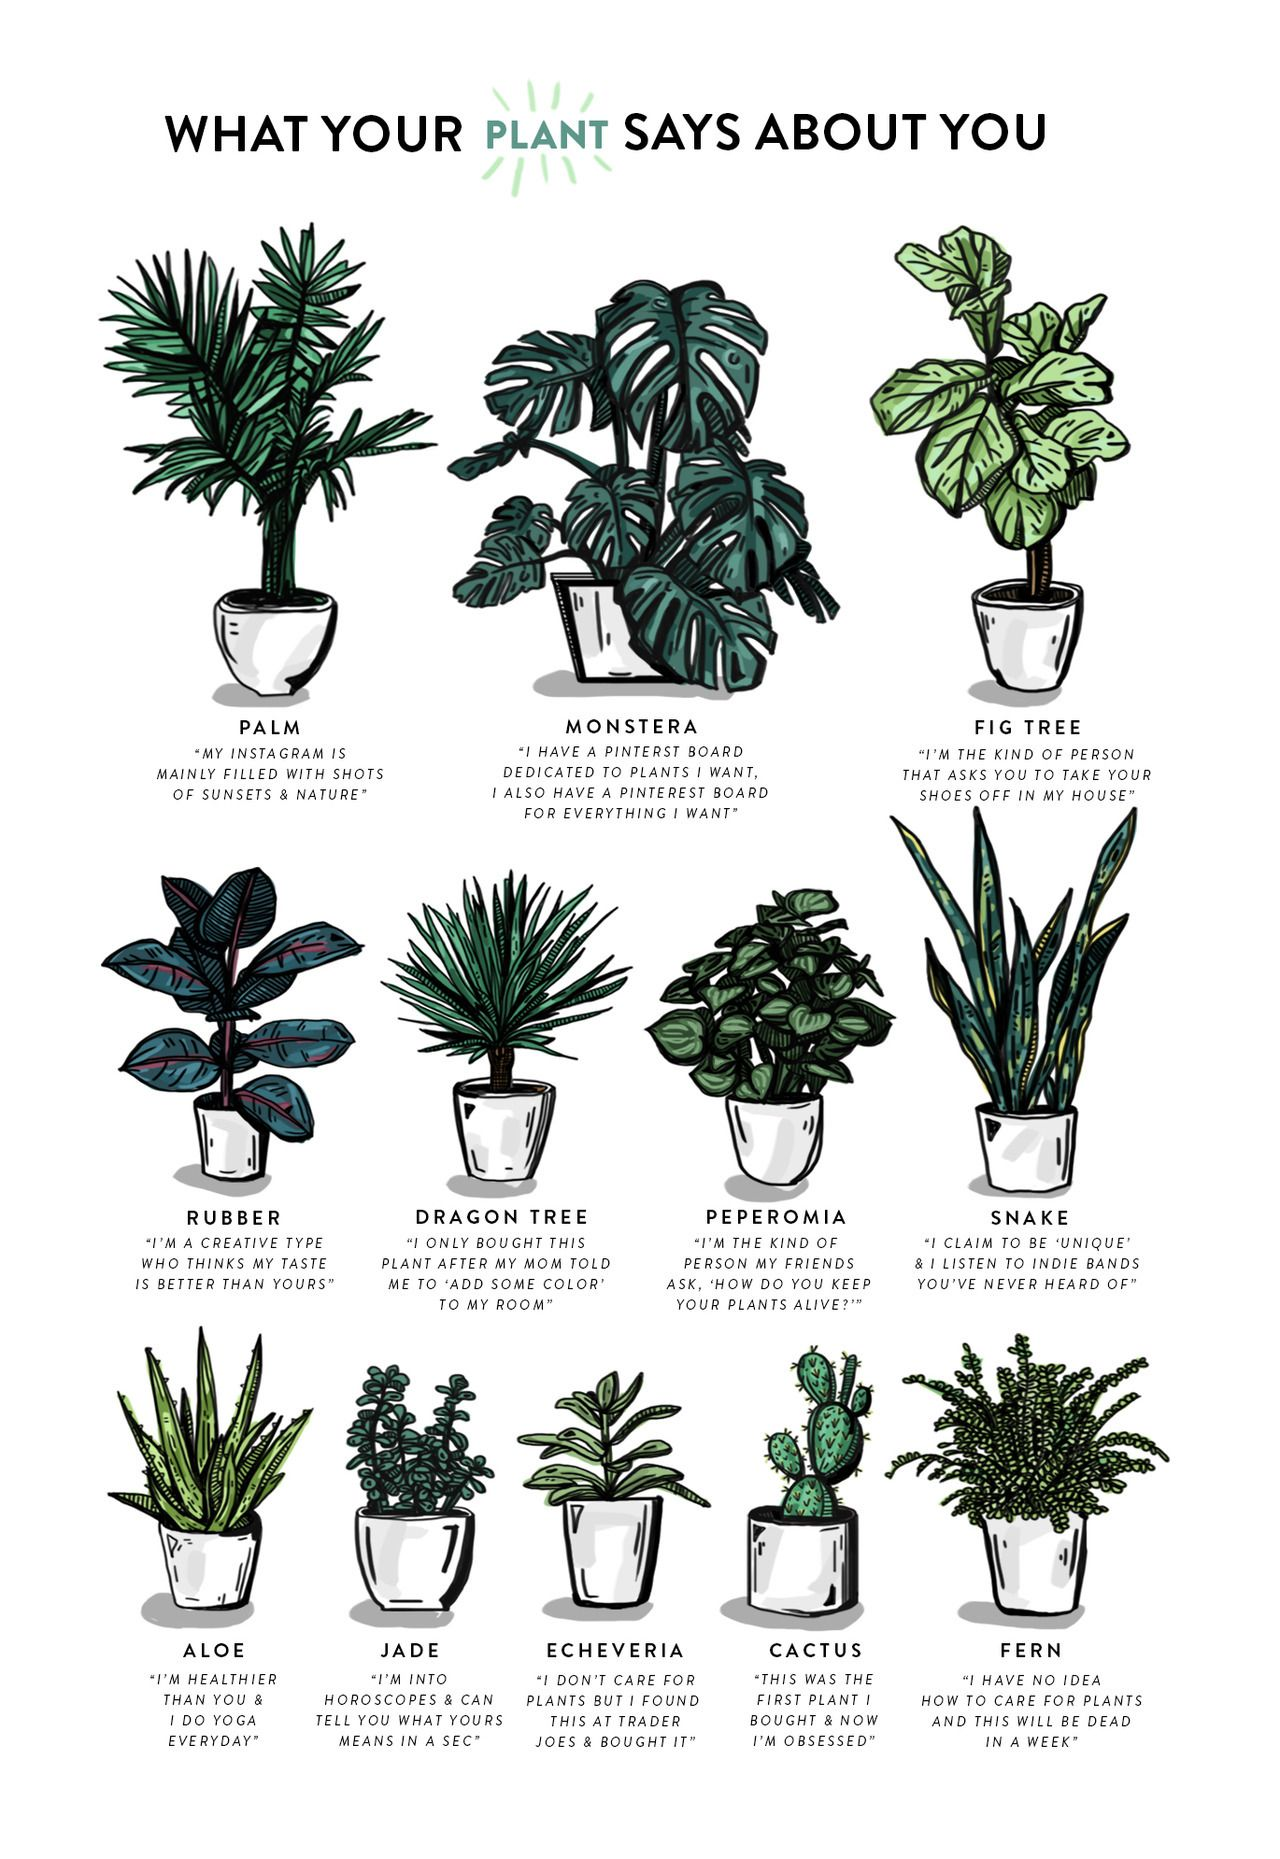 Kellymalka What Does Your Plant Say About You Zoom Zoom Sry For Small Type Wanted To Include All The Plants Plants Indoor Plants House Plants